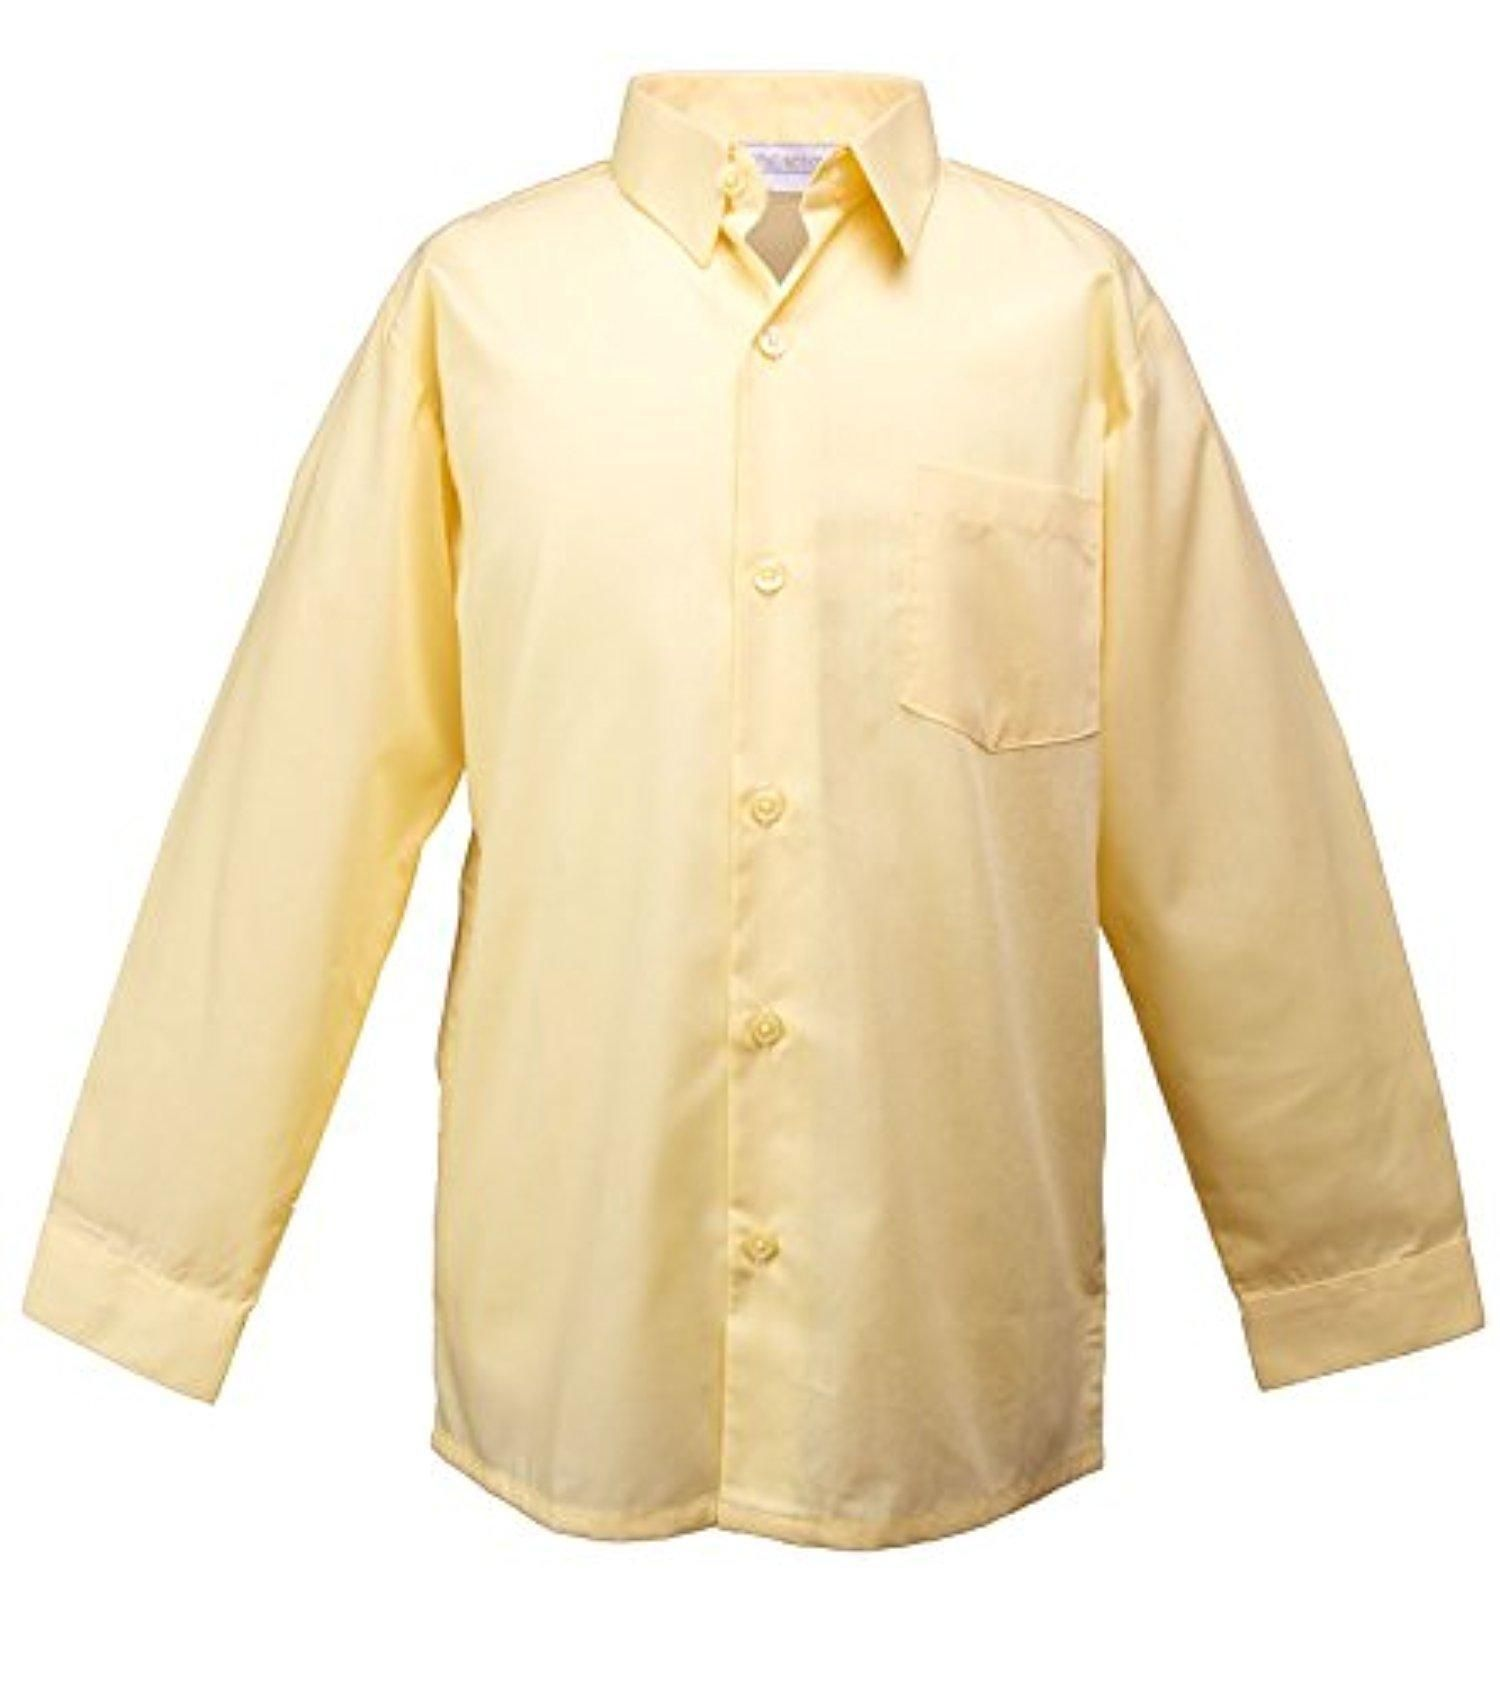 16fa269fcb4 Spring Notion Big Boys  Long Sleeve Dress Shirt 2T Yellow - Brought to you  by Avarsha.com